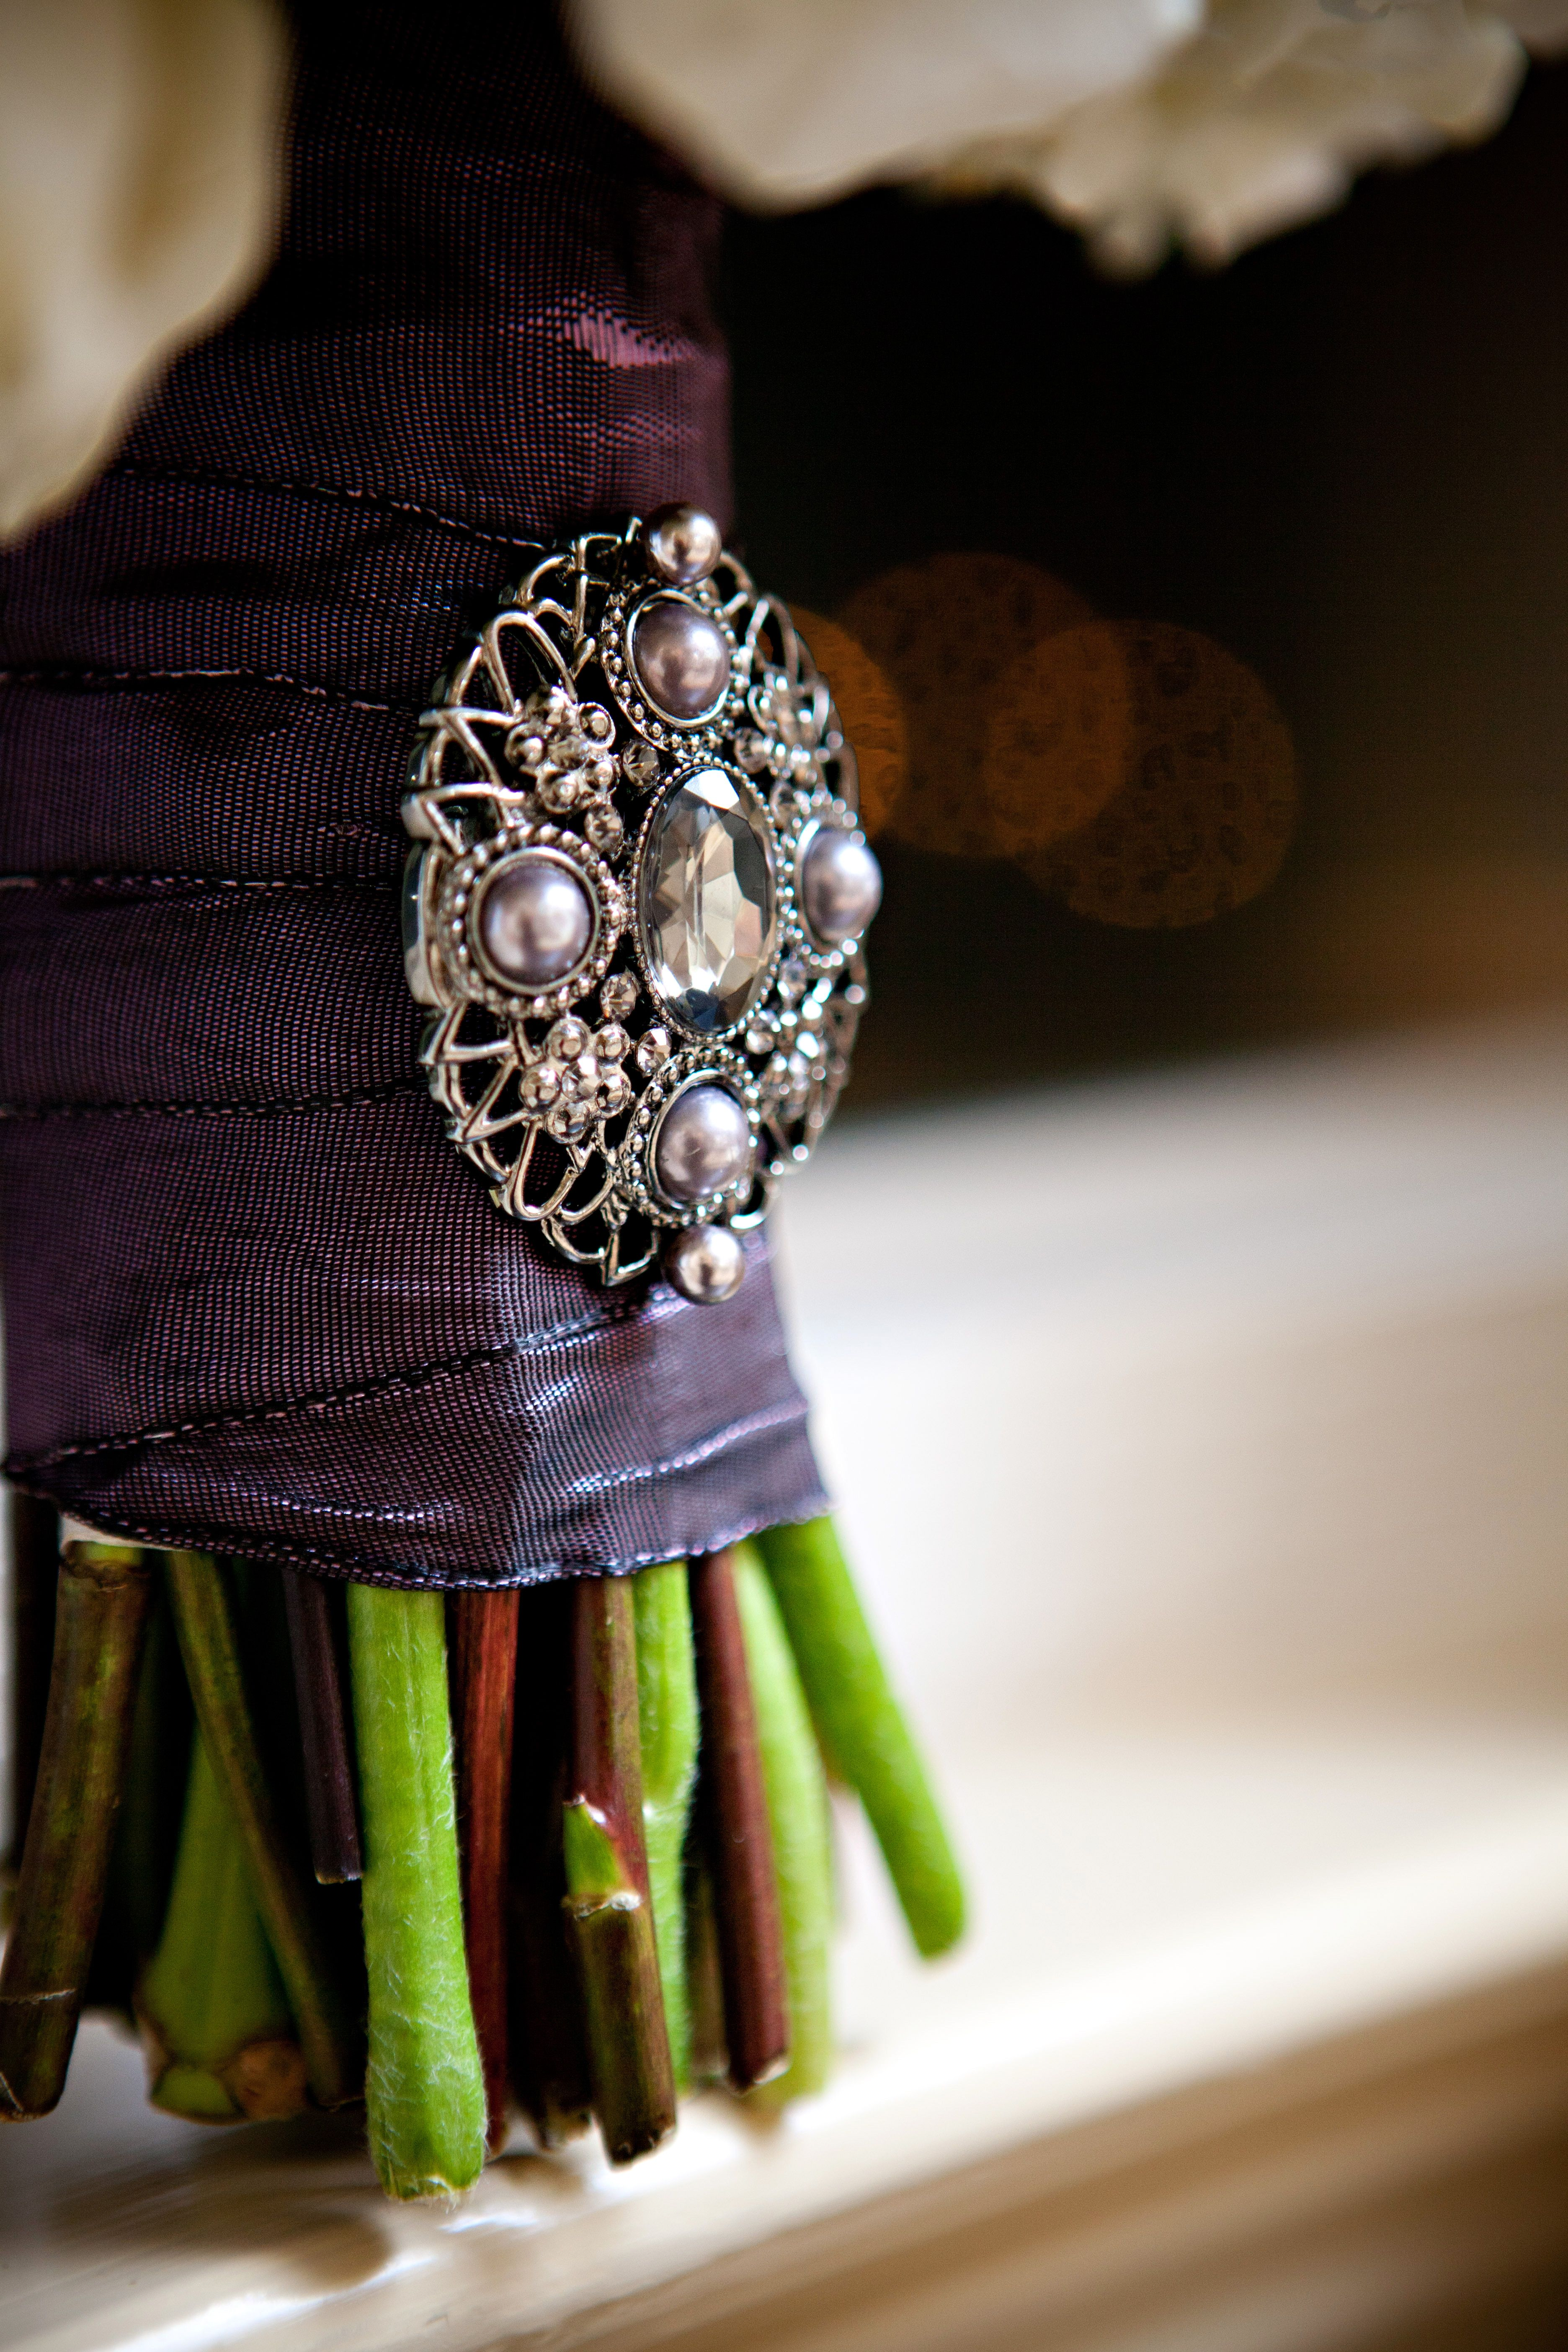 My Brooch ...Bought it at Michael's and my florist attached it!